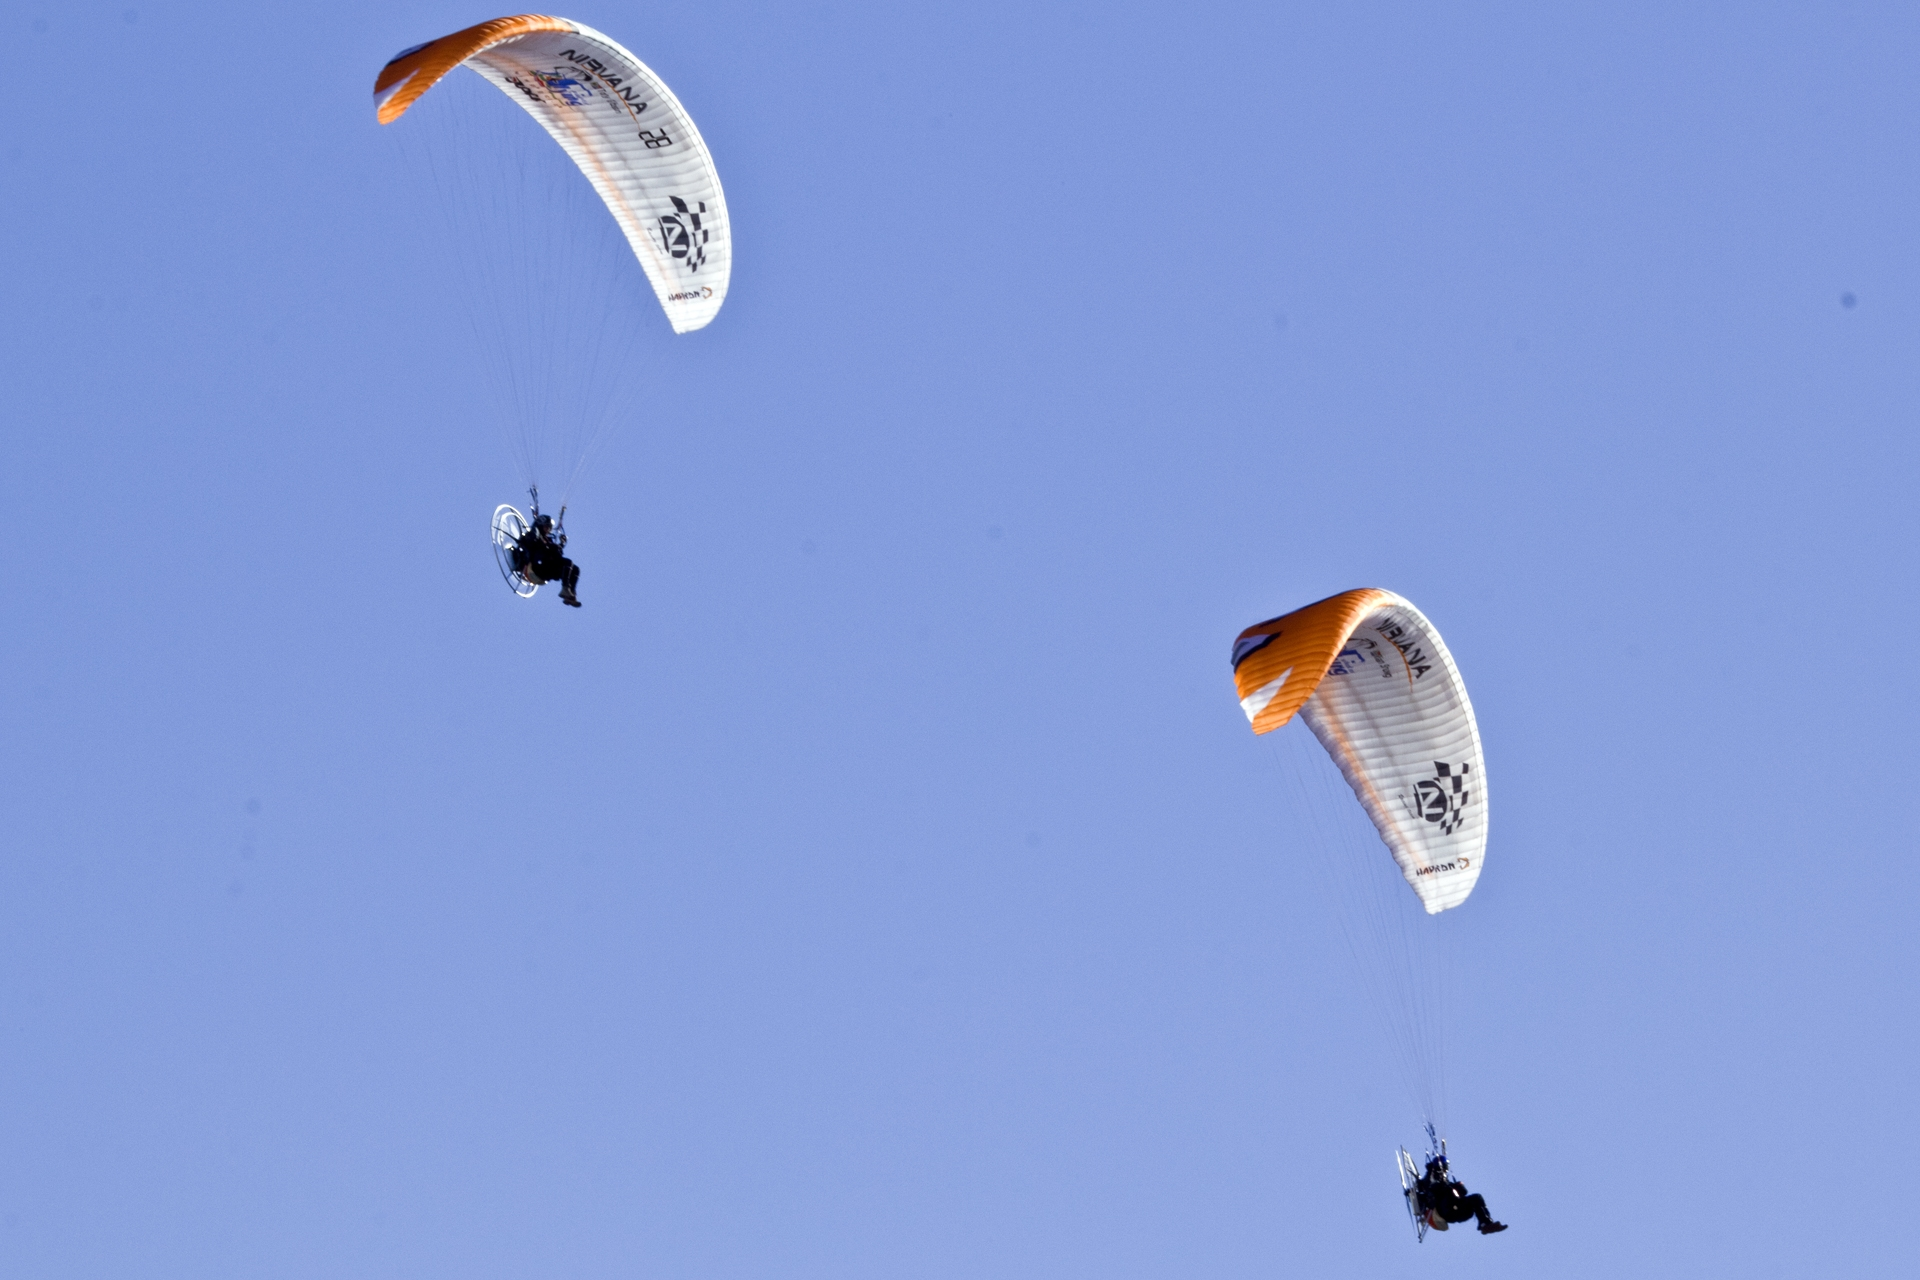 Paragliding at the Airshow